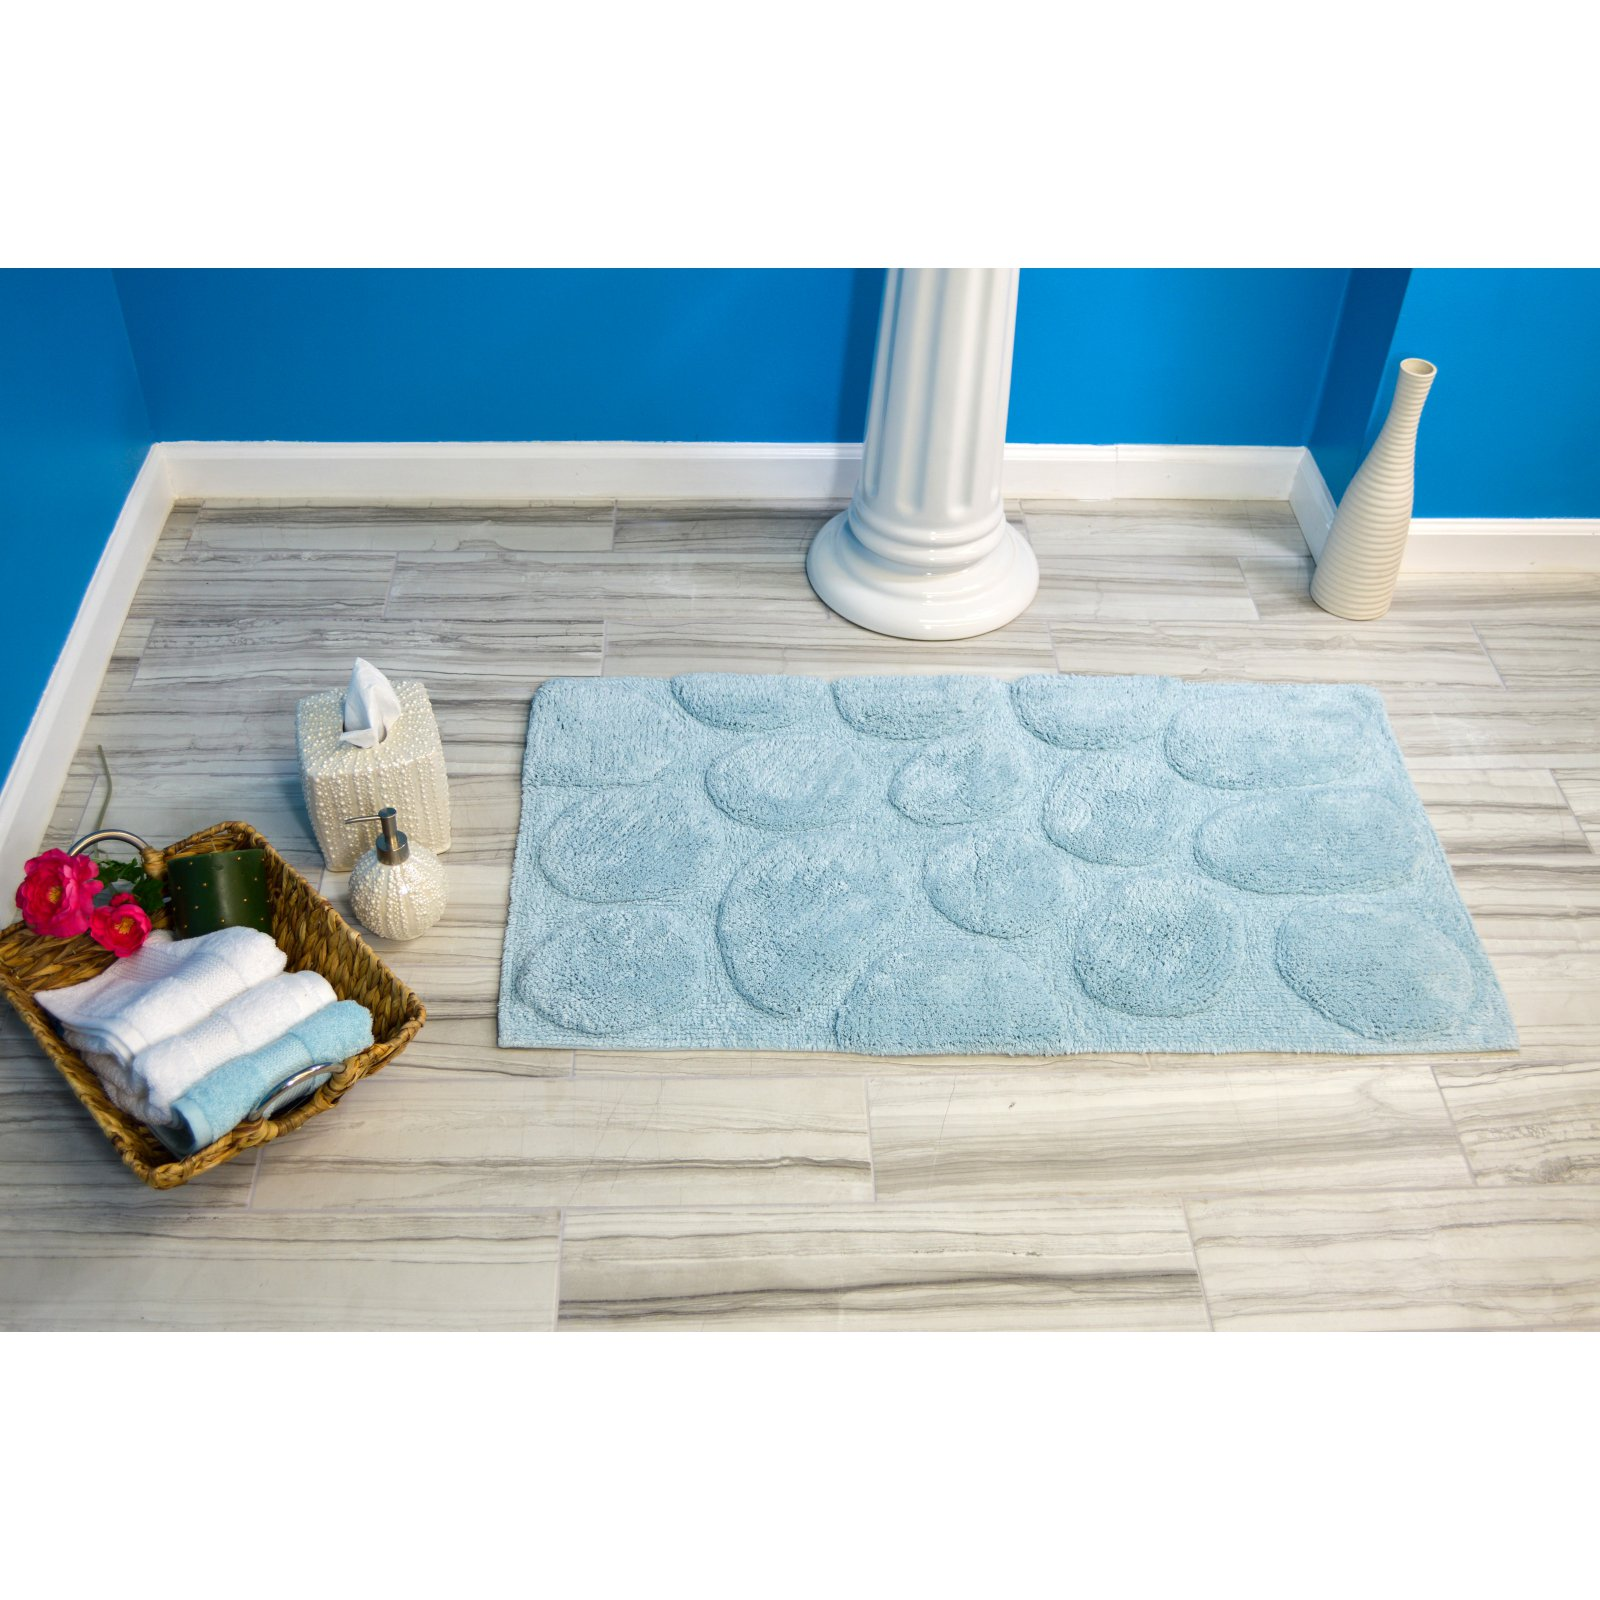 Elegance Collection Palm Bath Rug